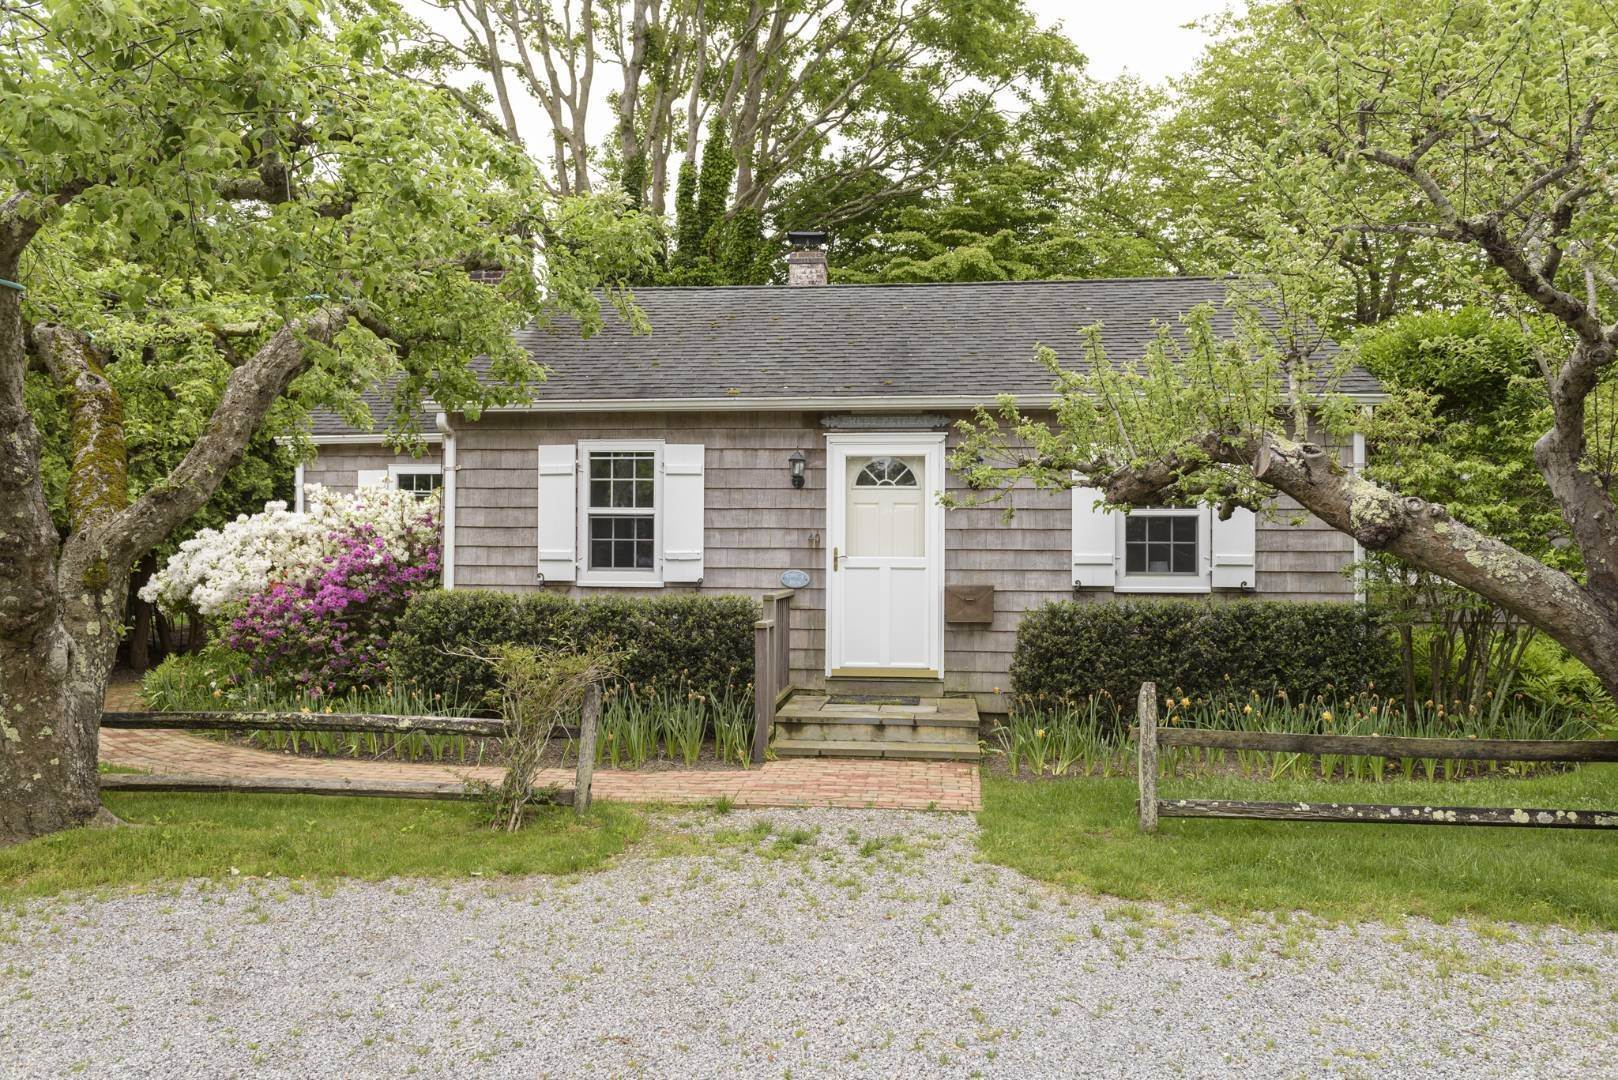 Single Family Home for Sale at Charming East Hampton Village Cottage 40 The Circle, East Hampton, NY 11937